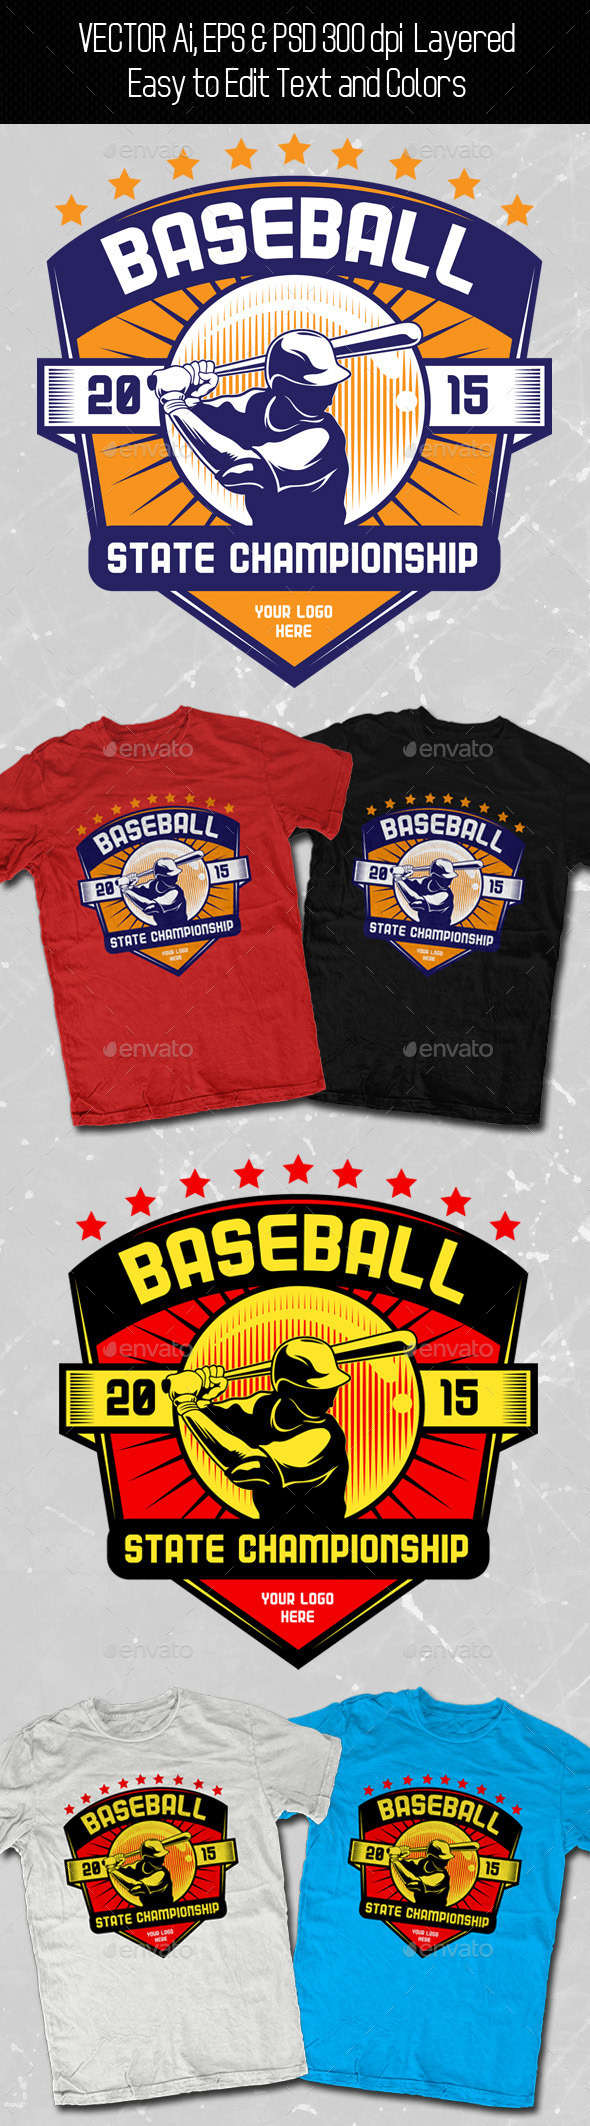 Baseball T-shirt Template